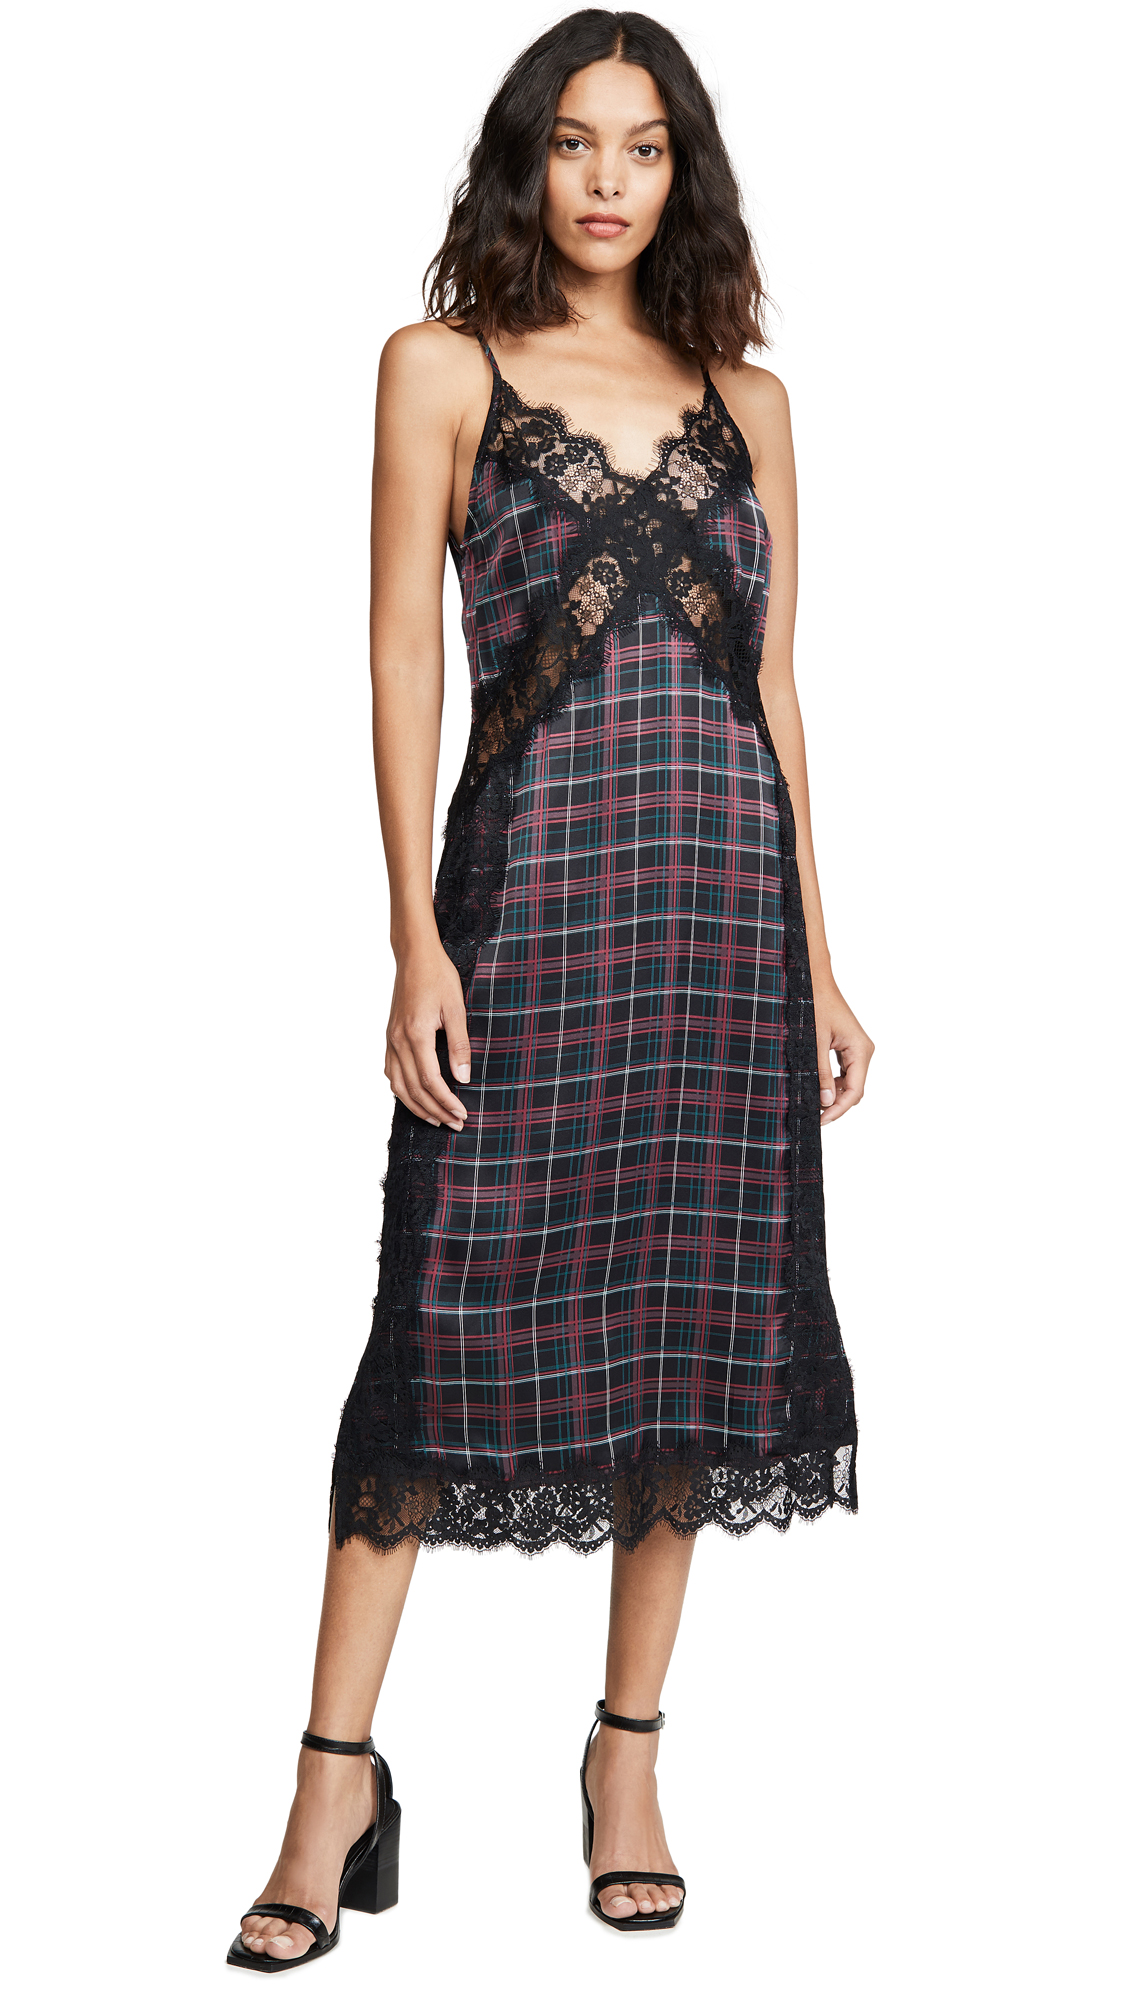 cami nyc purple and green plaid printed slip dress with black lace insert shopbop